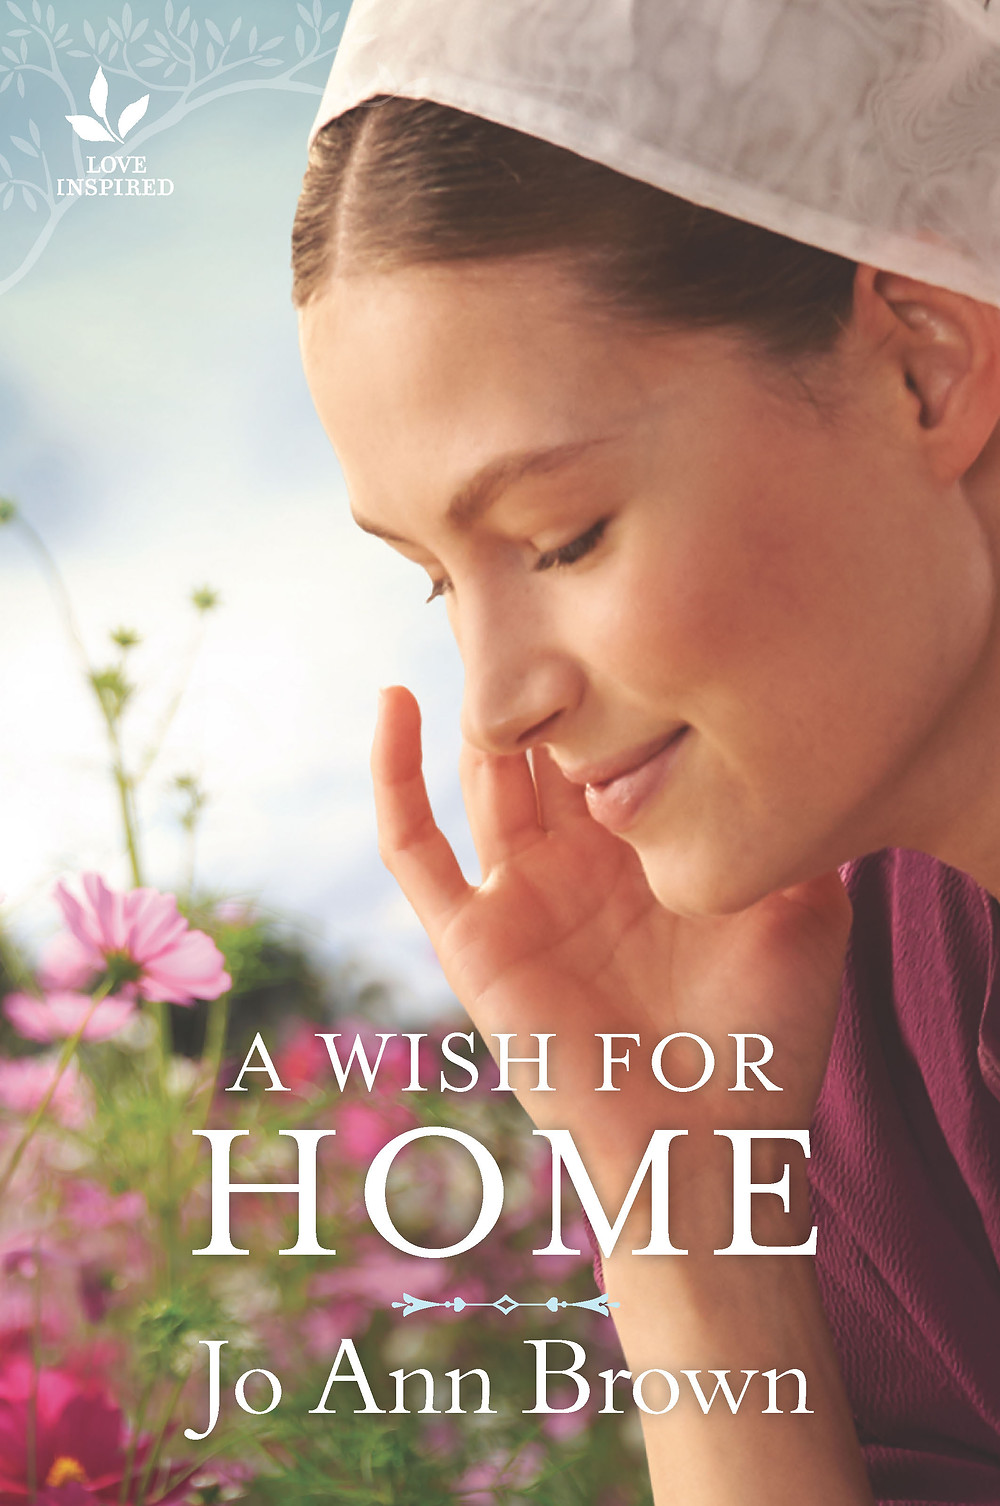 A WISH FOR HOME by Jo Ann Brown - a love inspired Amish romance